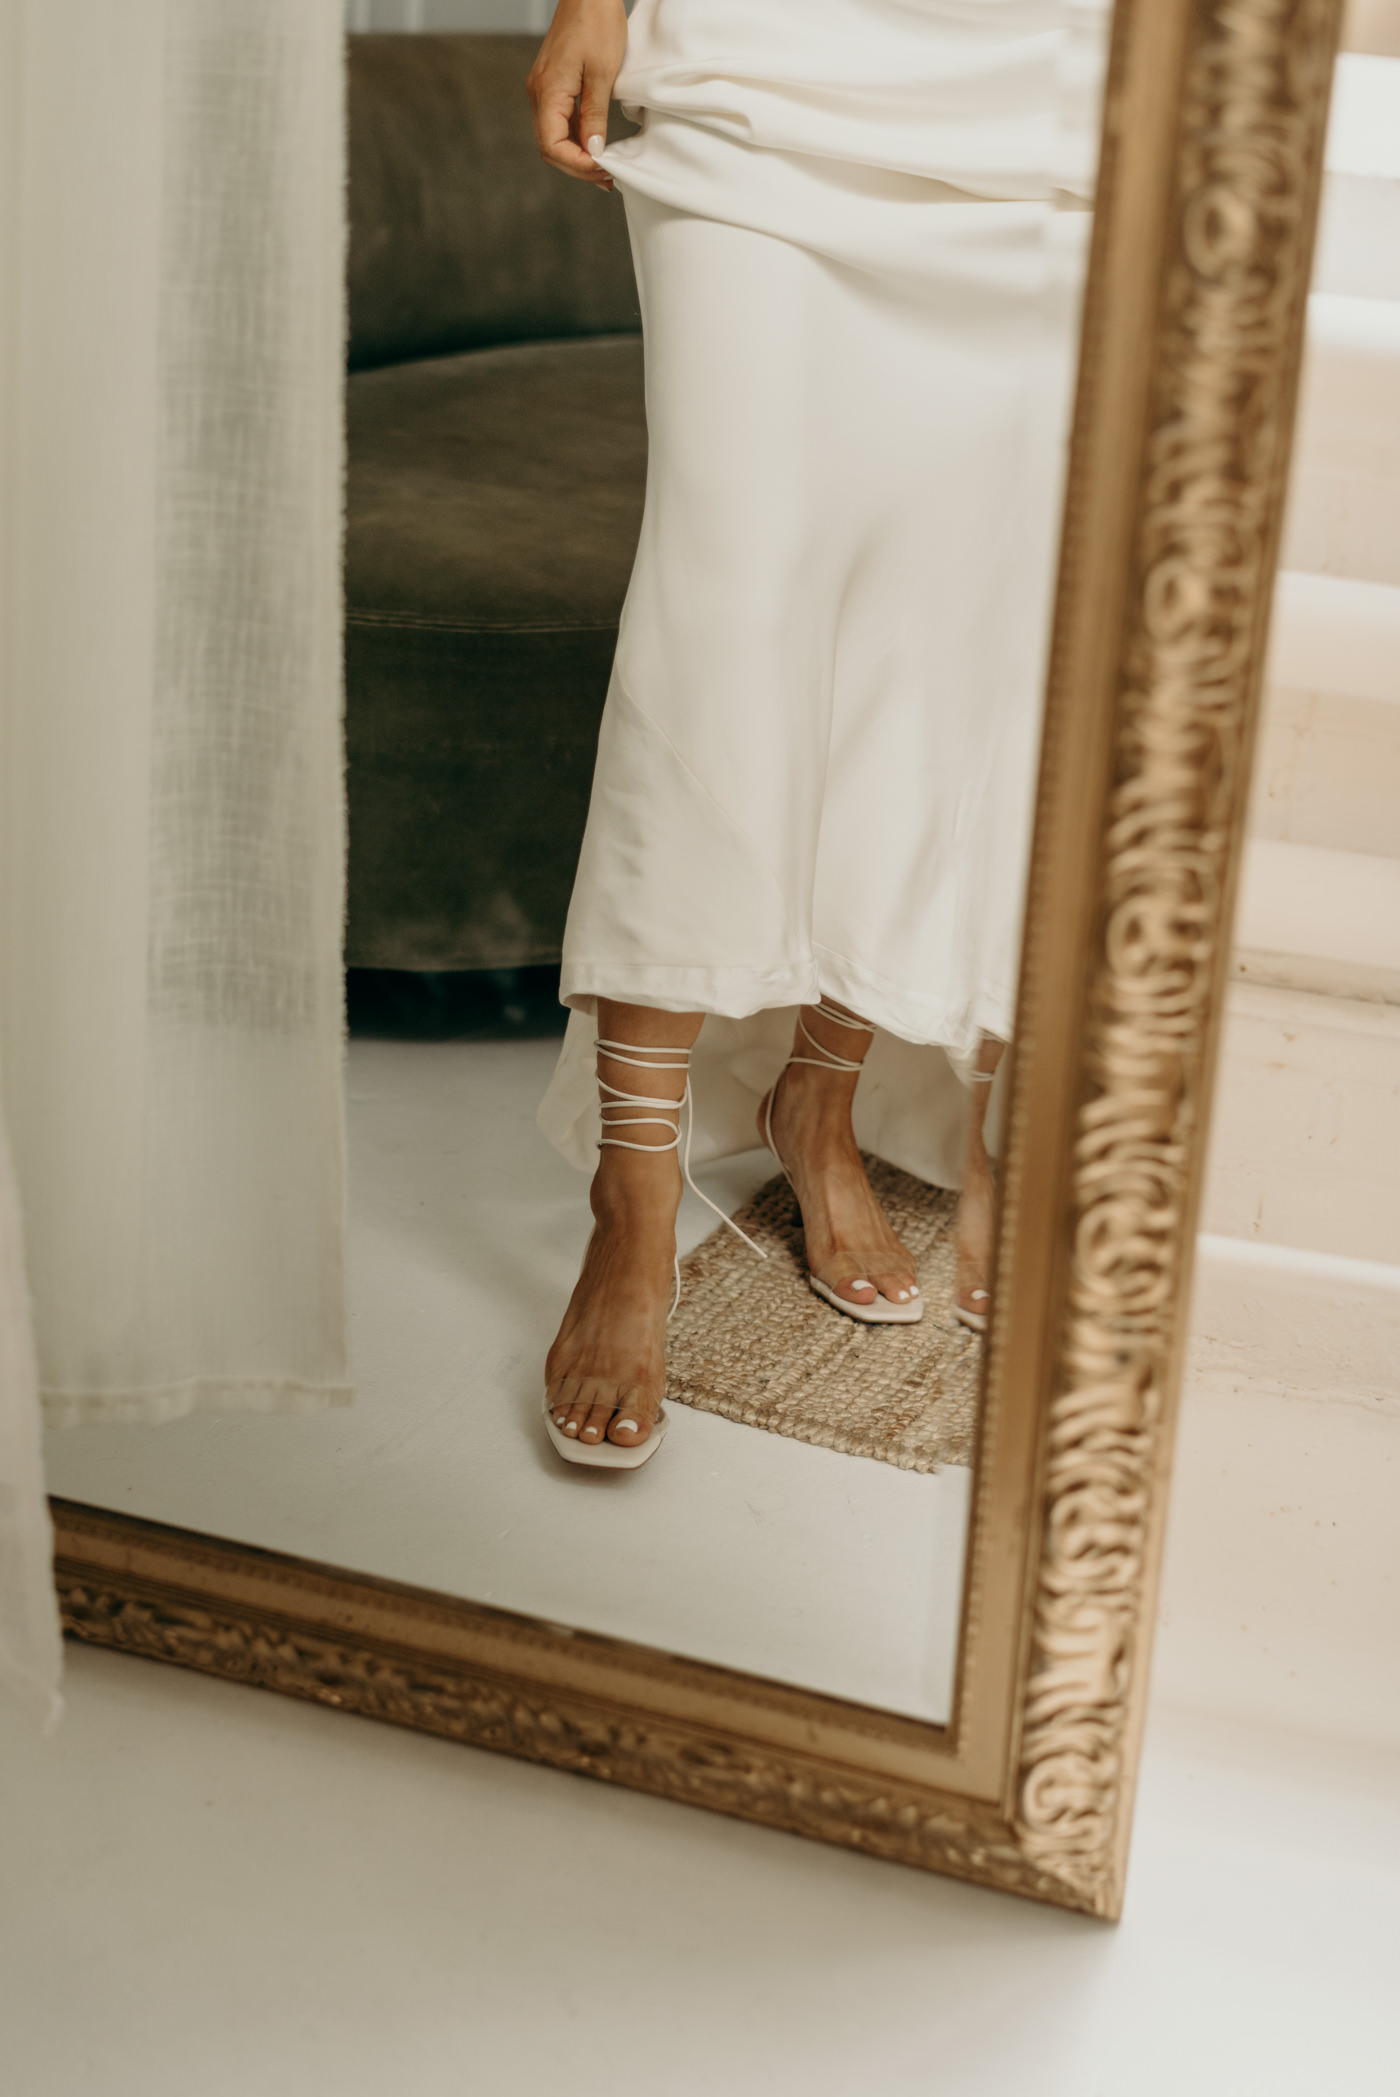 Zara wedding shoes that lace up